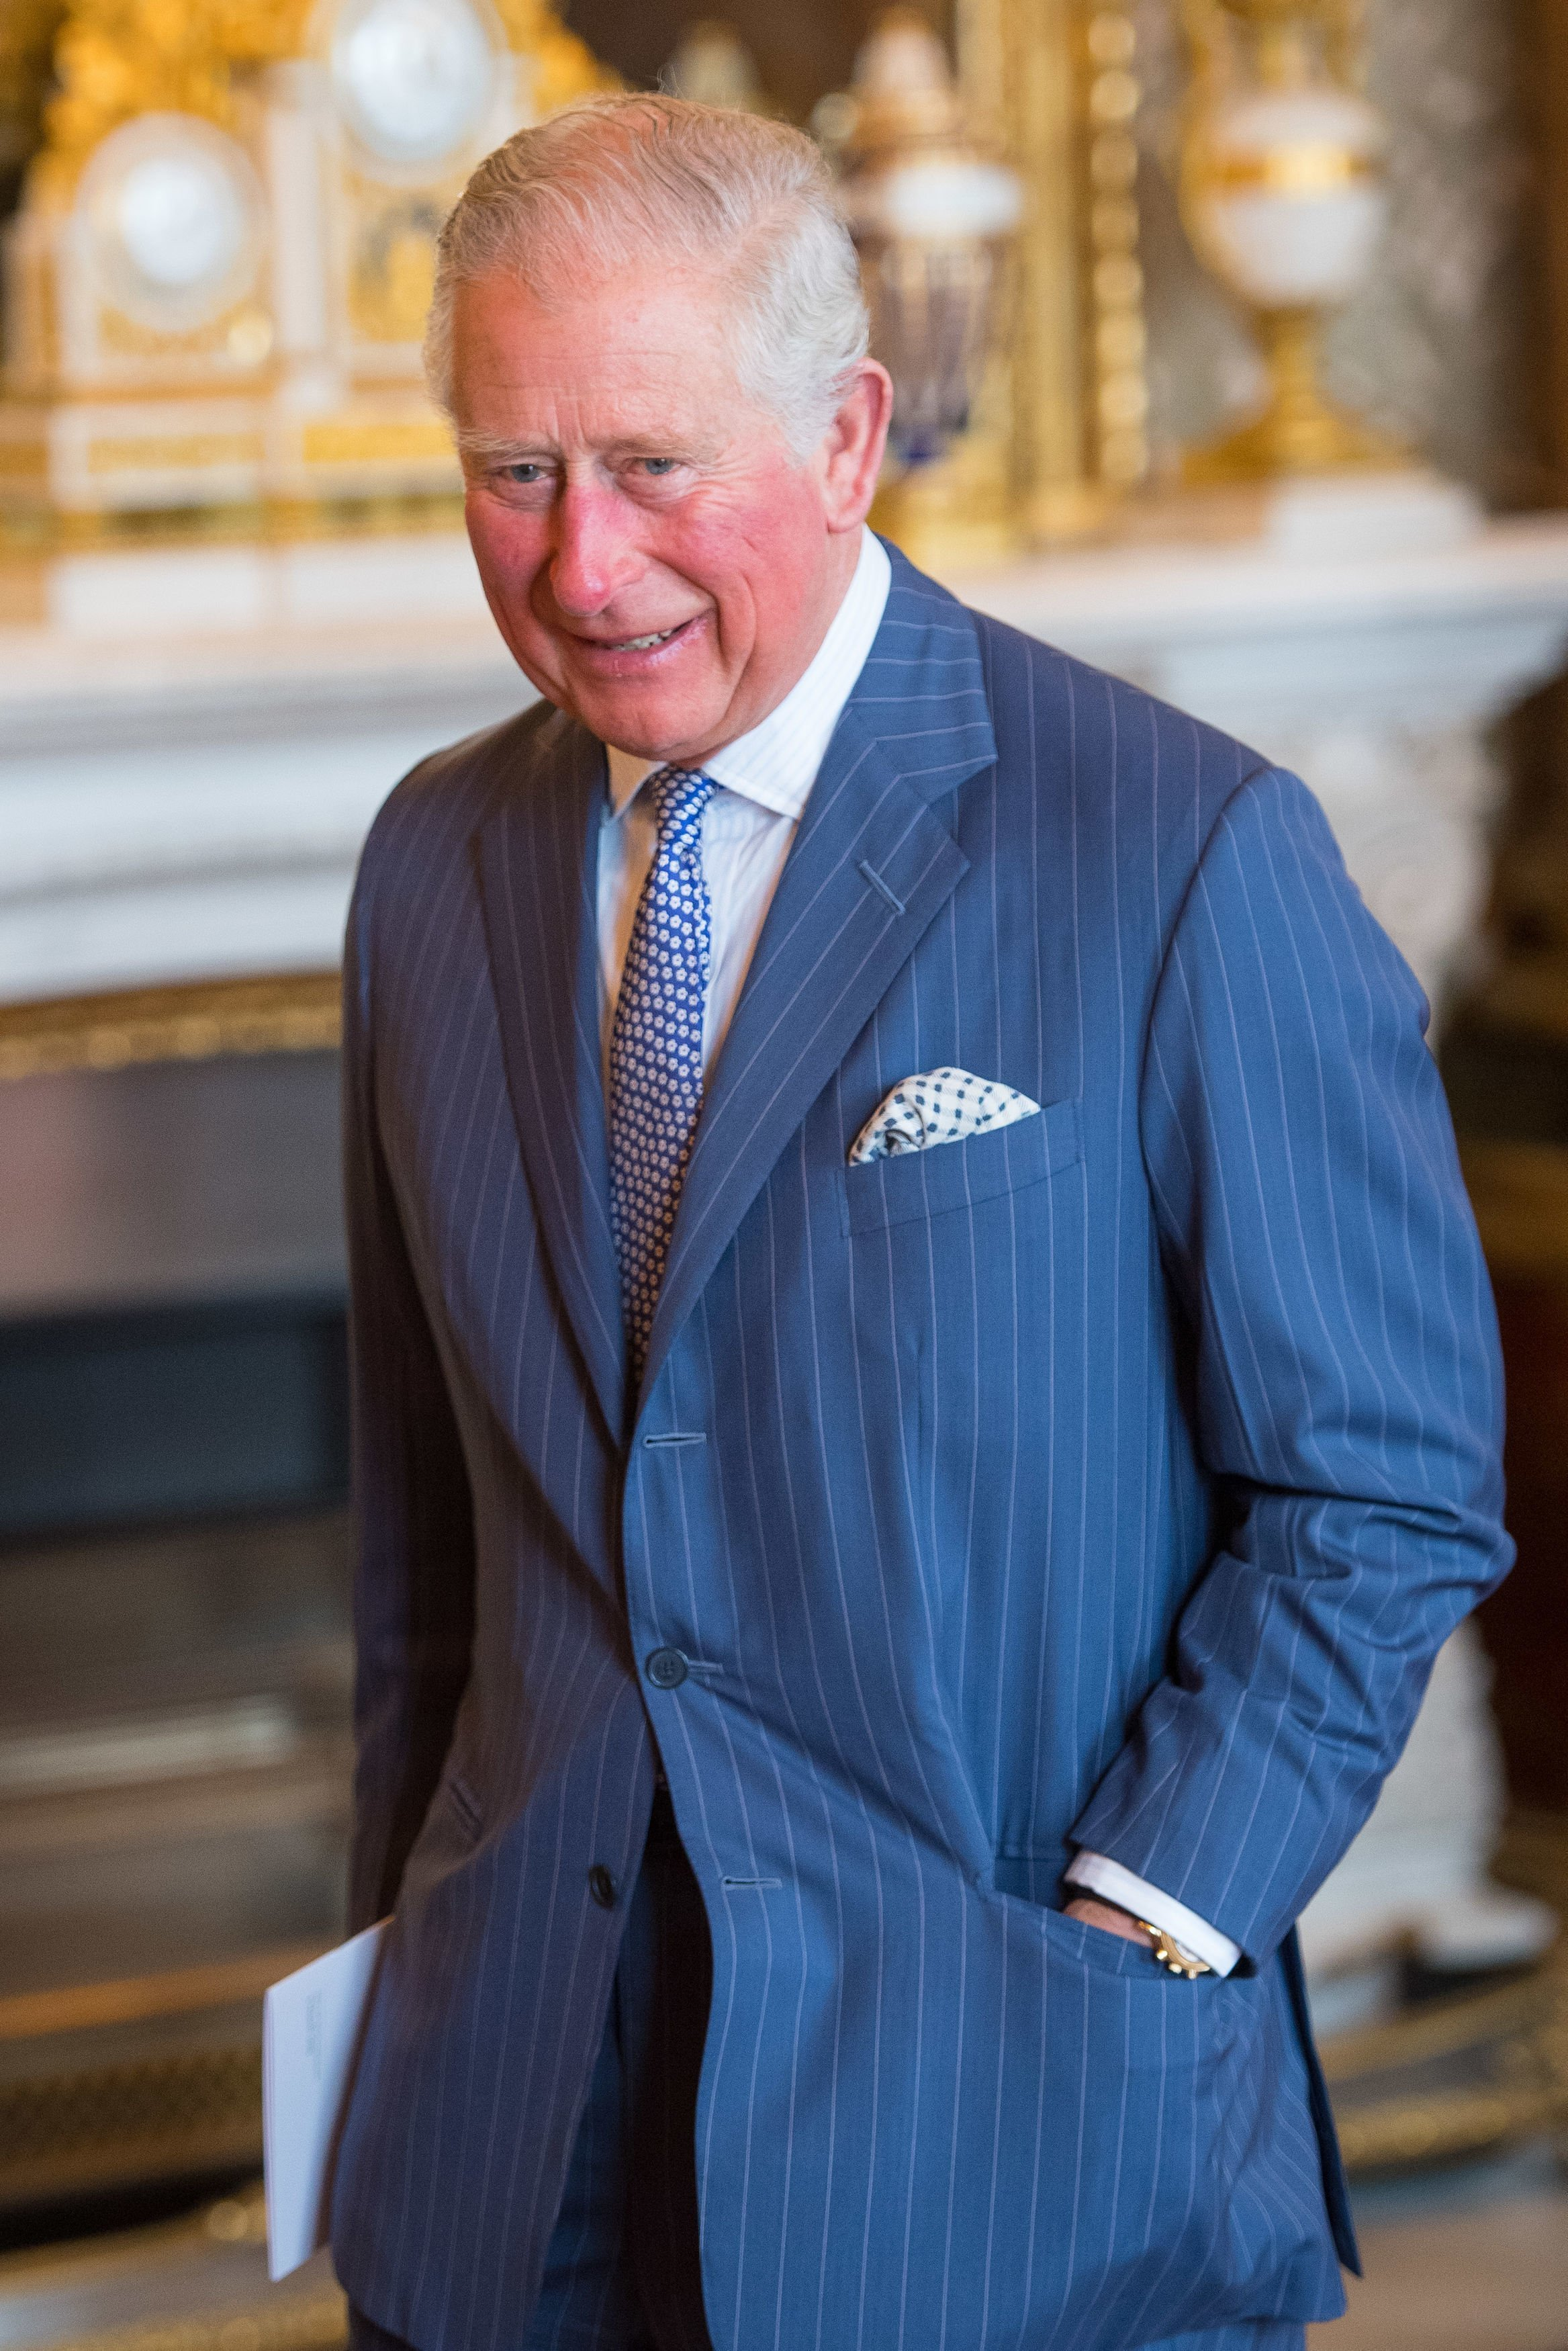 Prince Charles at the 50th anniversary of the Investiture of the Prince of Wales   Photo: Getty Images